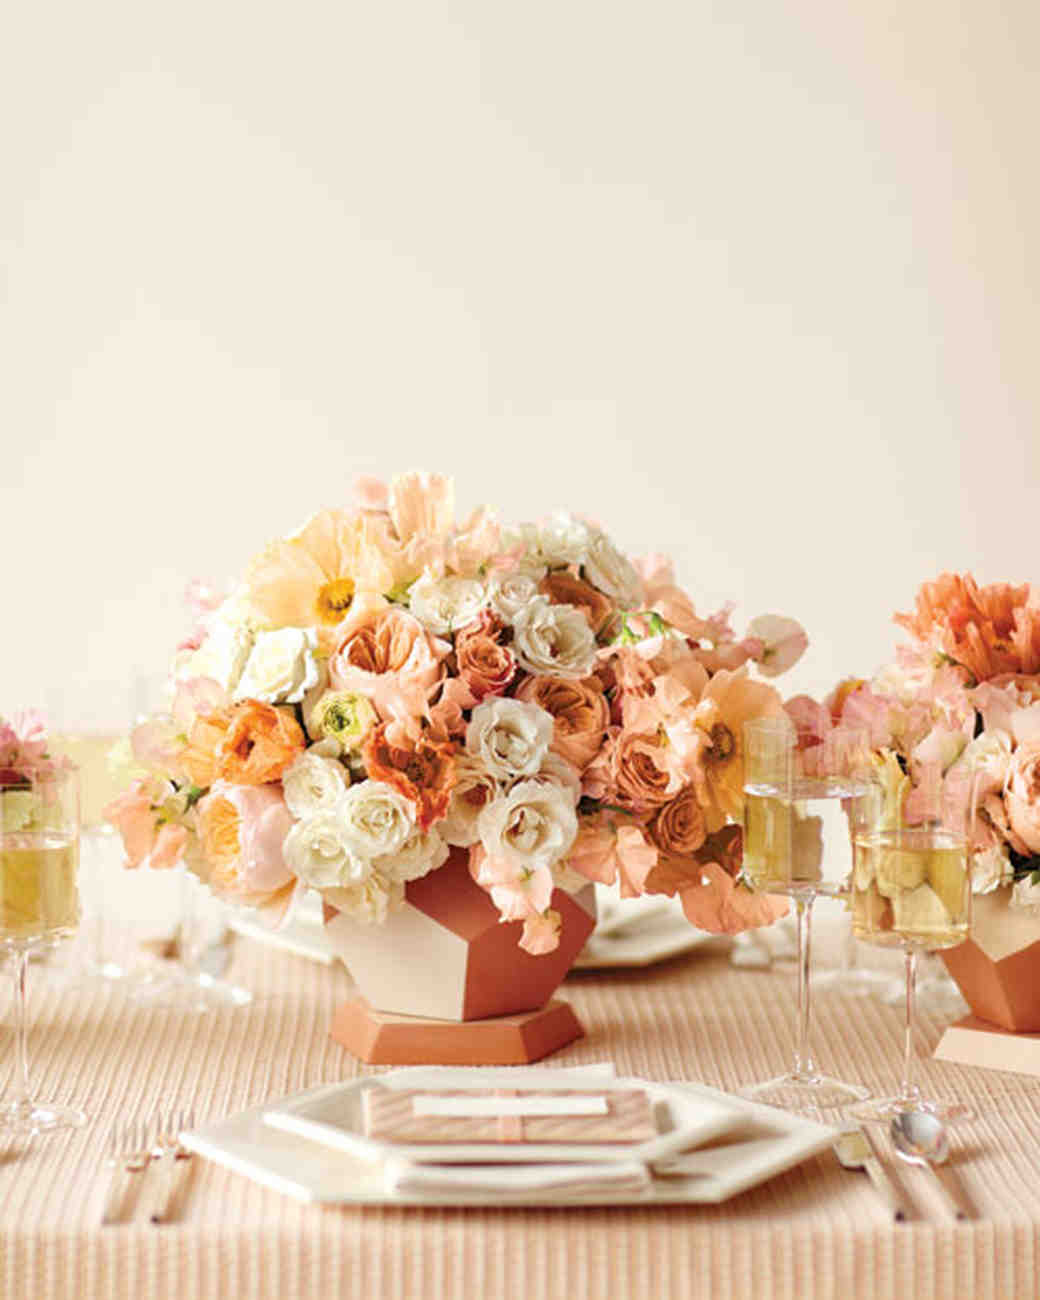 Peaches And Cream Is A Wedding Color Combination That